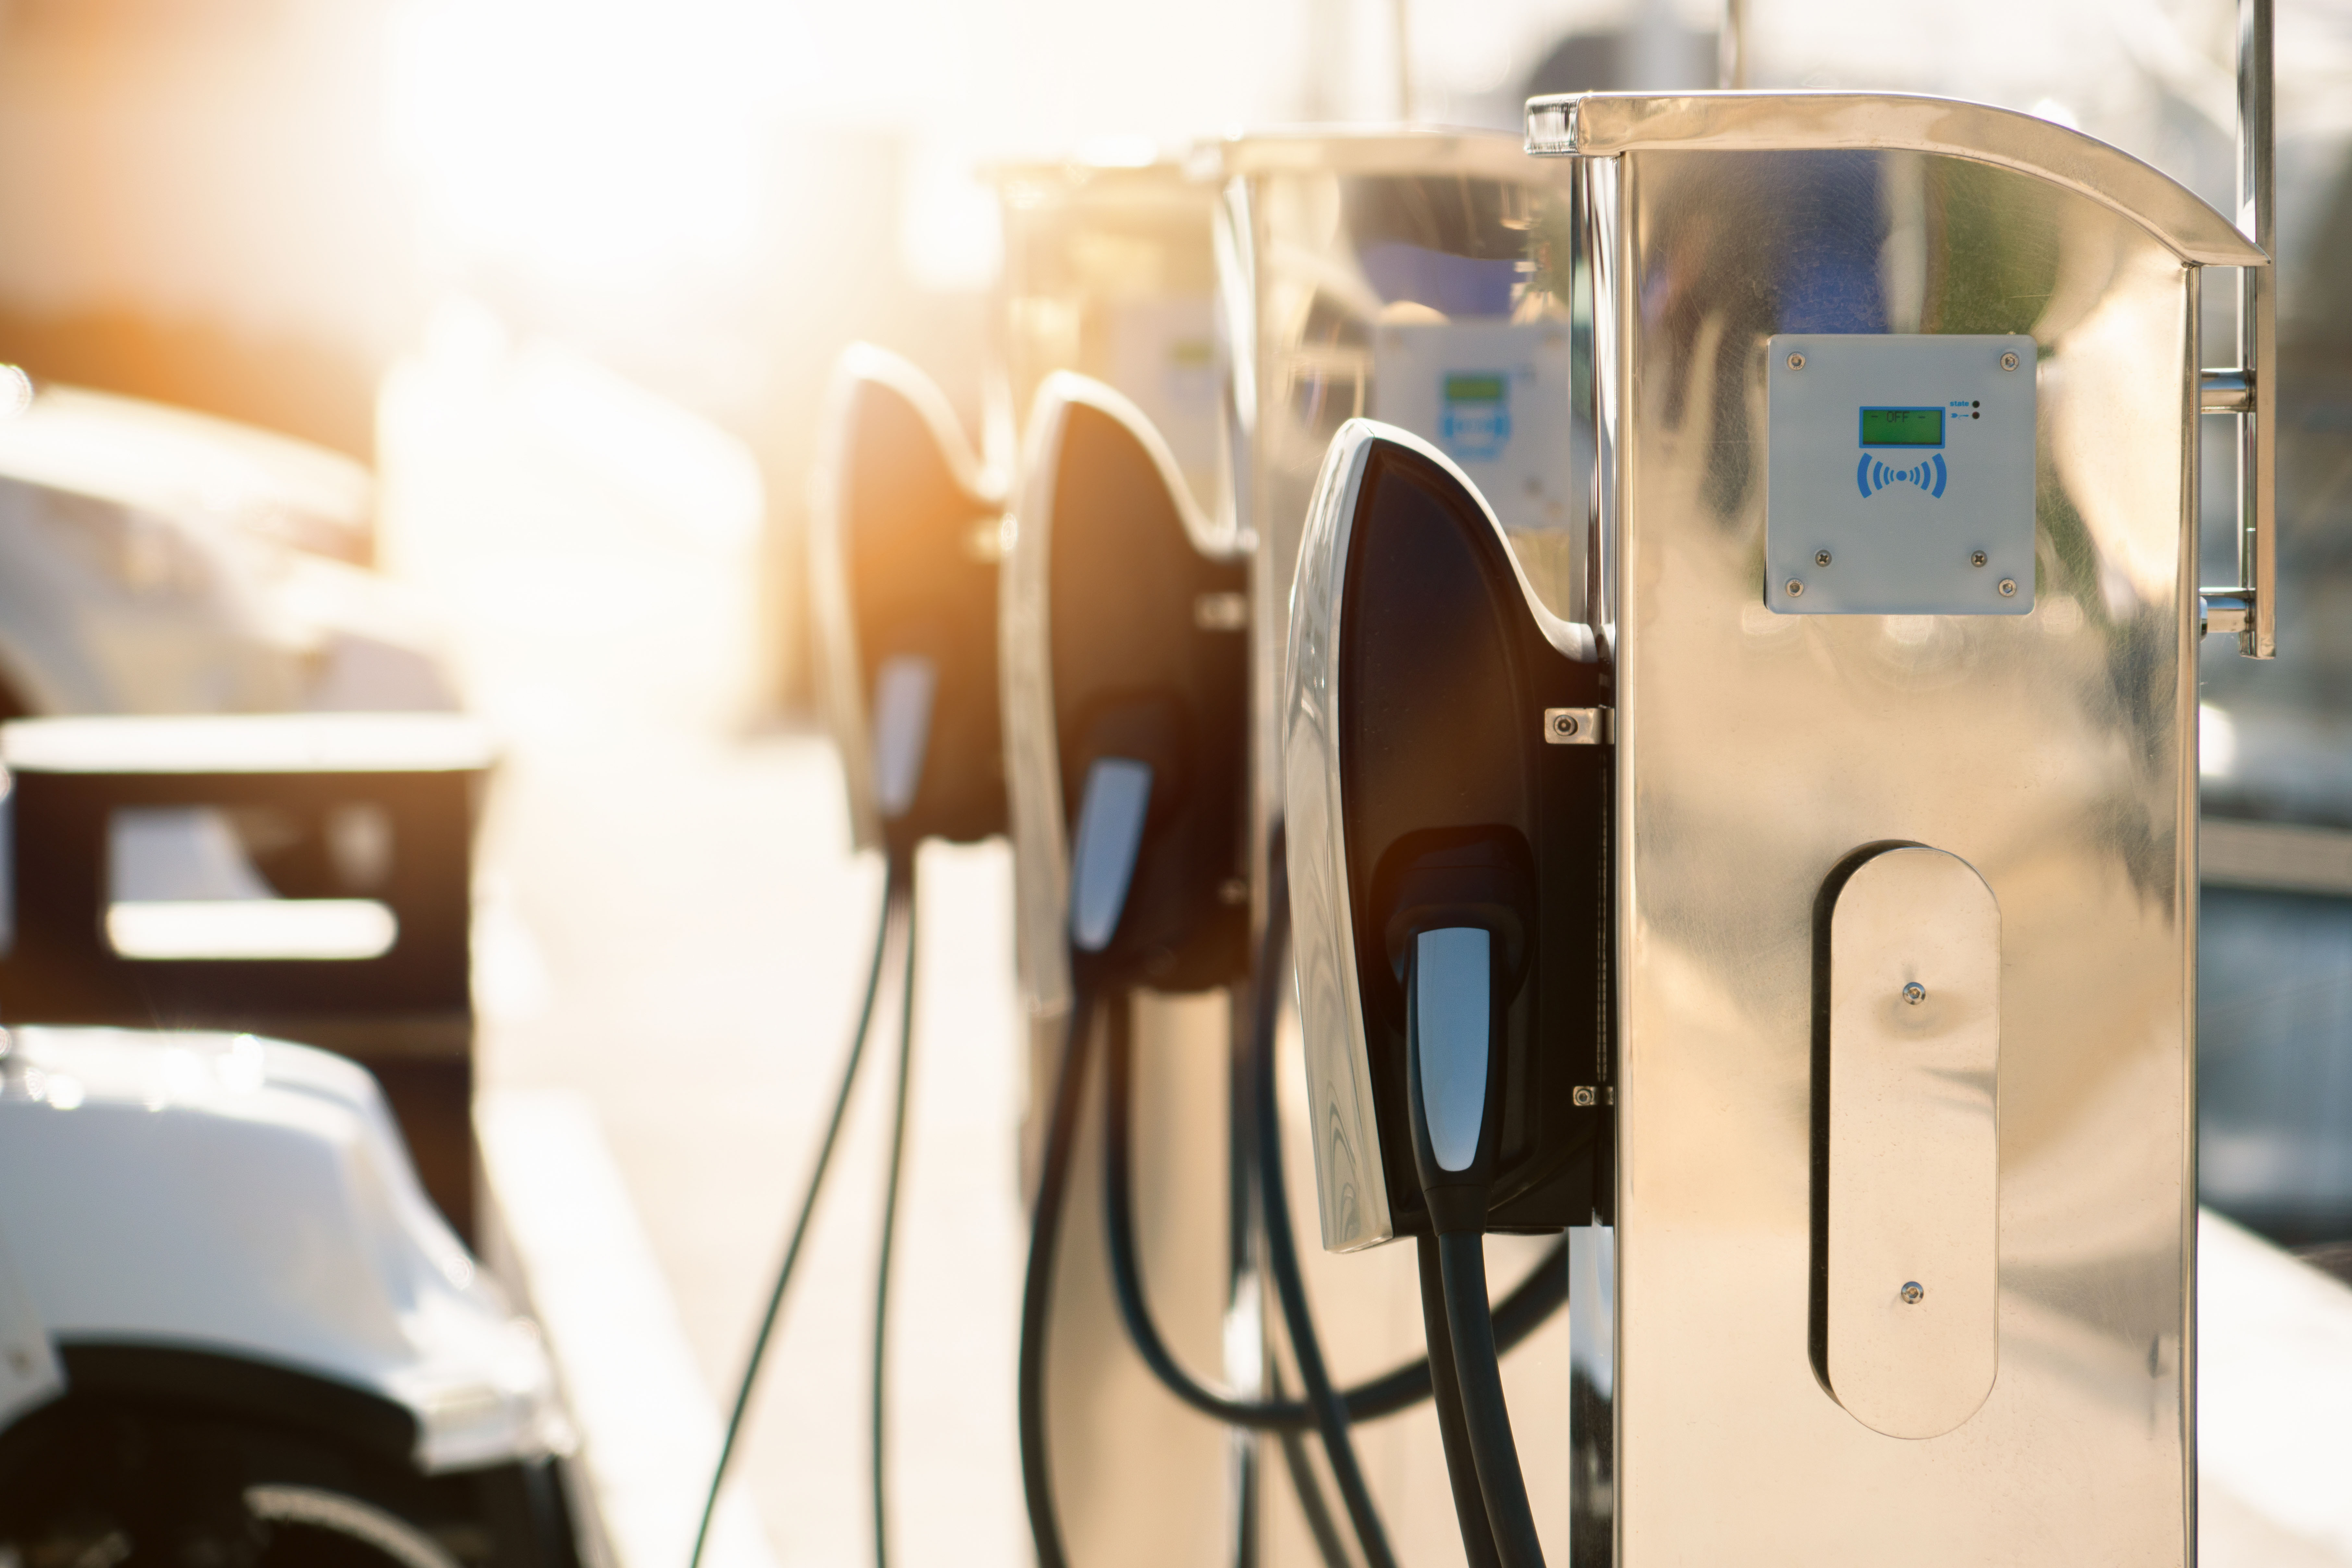 From commercial fast charge stations to public charging solutions, Northeast is ready to help businesses and municipalities bring their infrastructures up to speed for the 21st century. We have the expertise and equipment to upgrade your public spaces with the most current public access power solutions and EV charging systems.